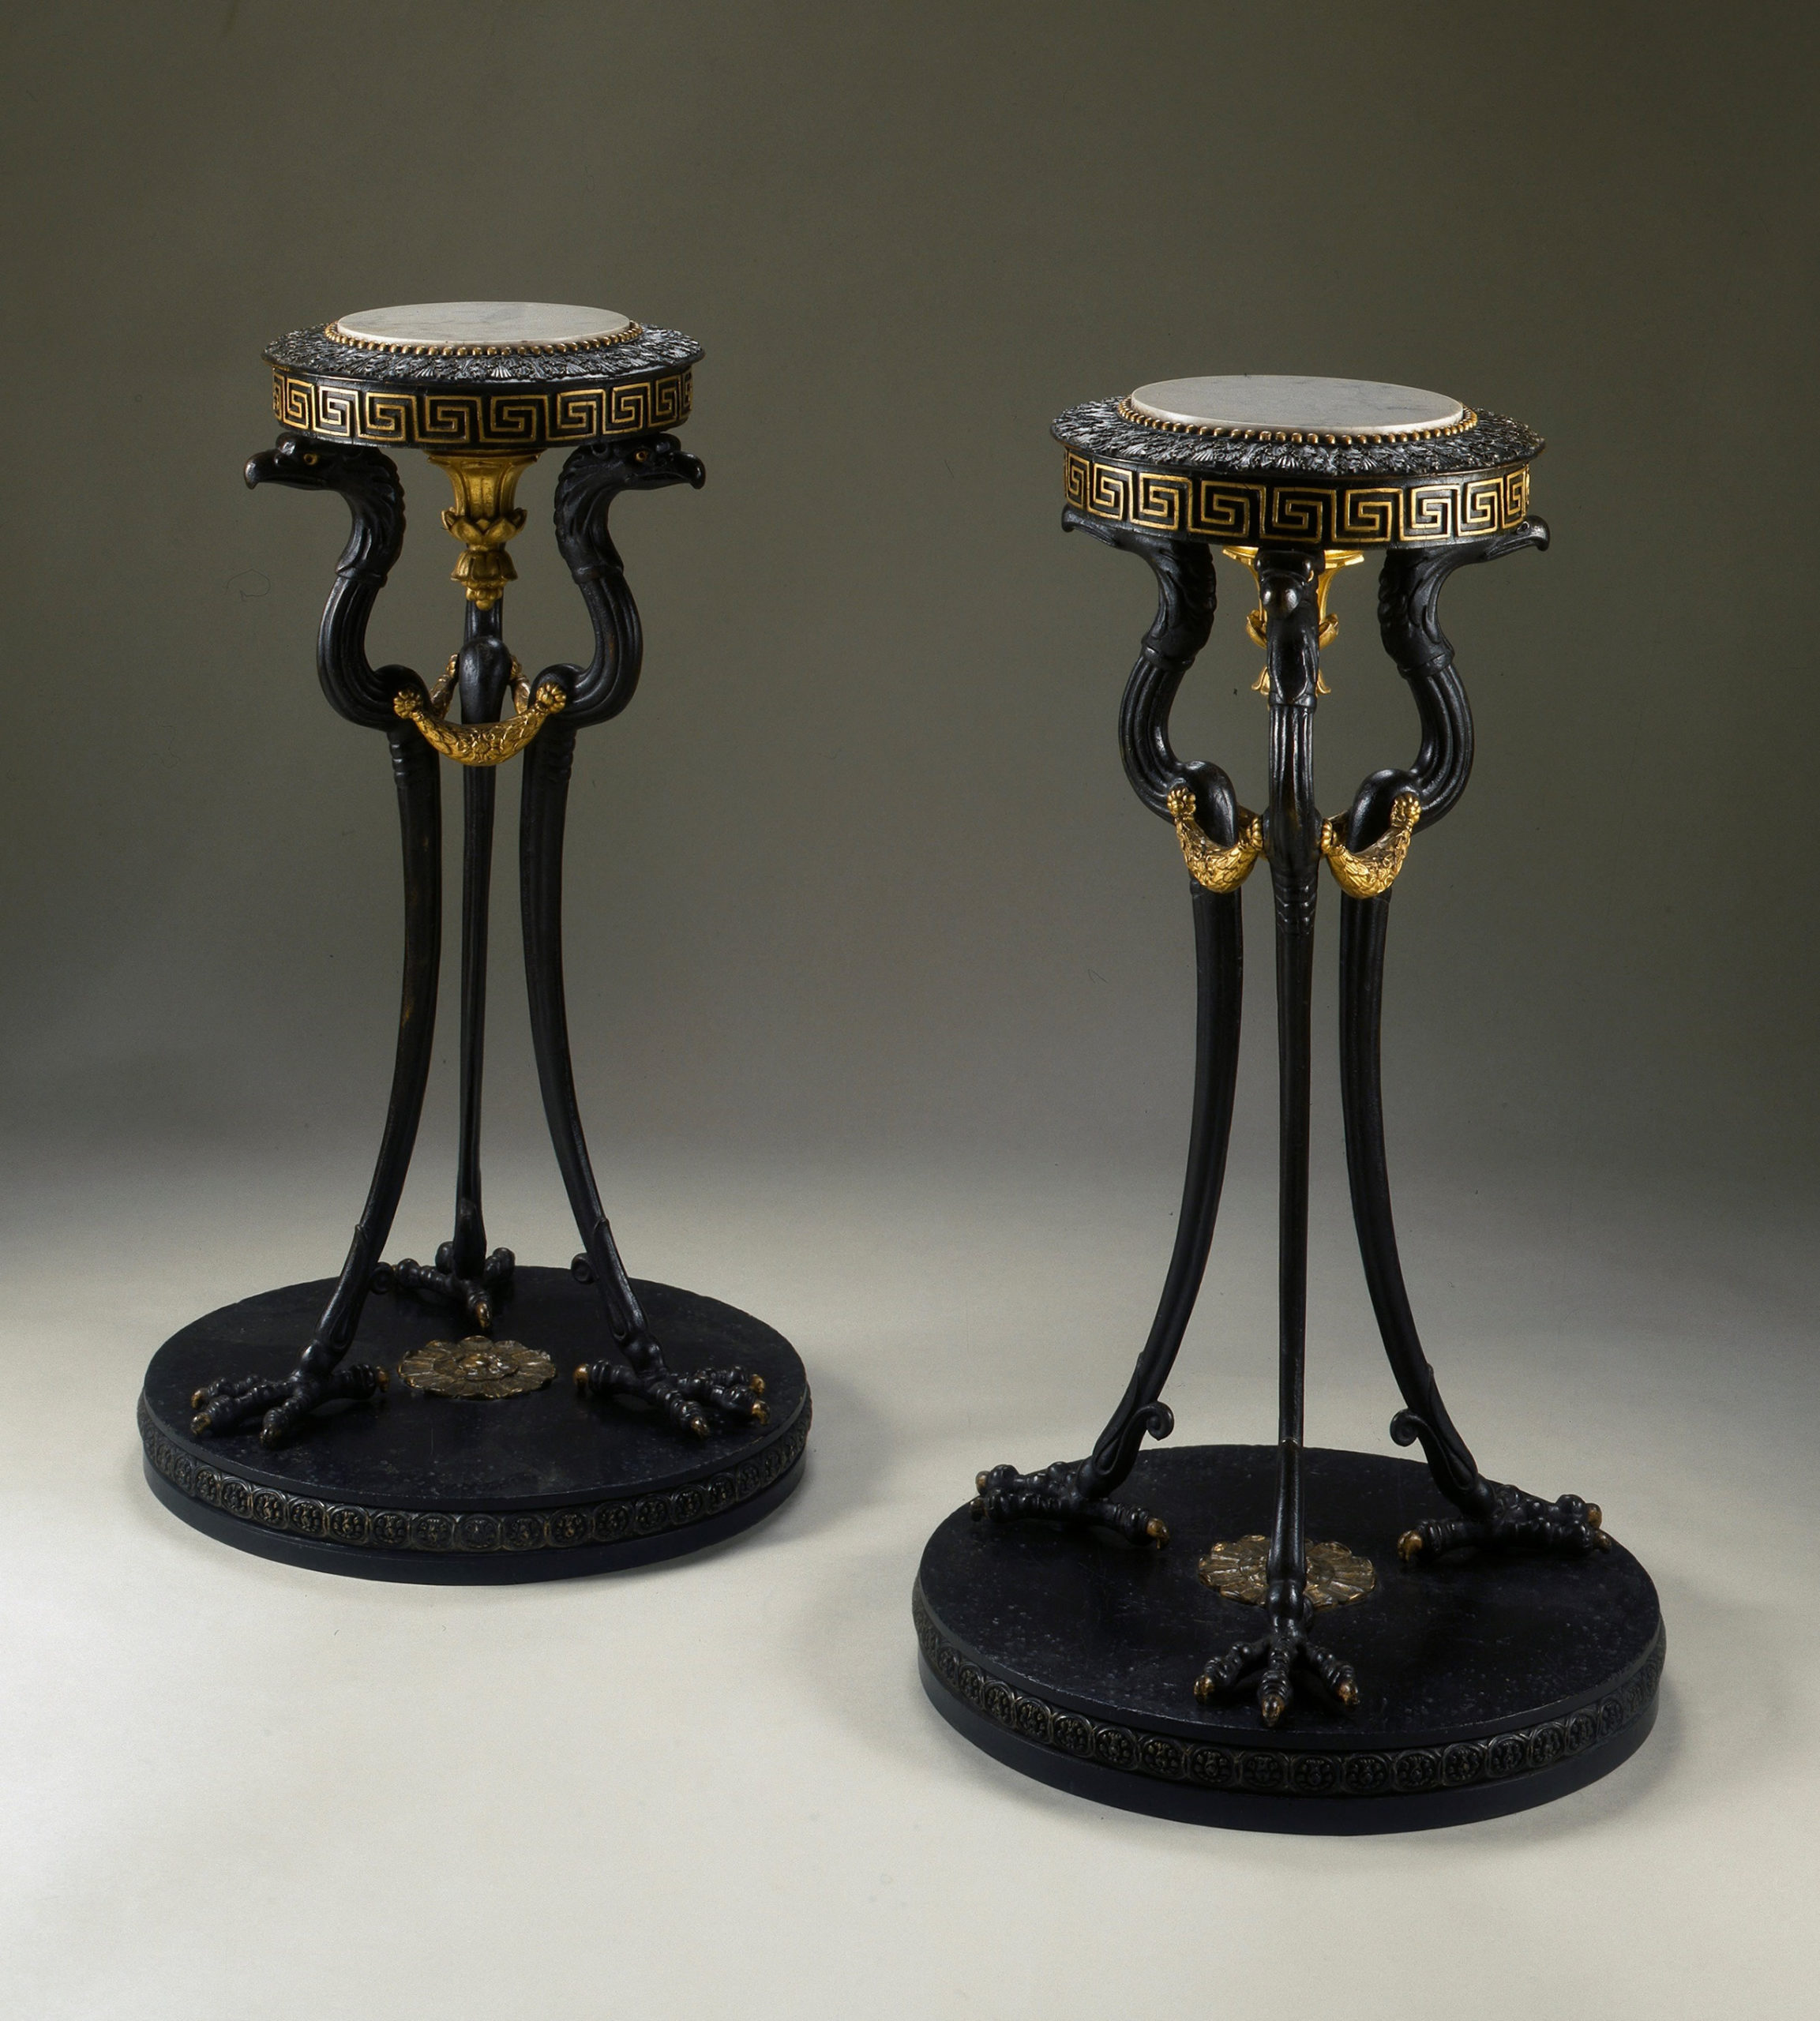 George Bullock Pair of tripods and stands, supplied to Samuel Day Junior, Hinton House, Bath, 1814 (Walker Art Gallery, Liverpool)